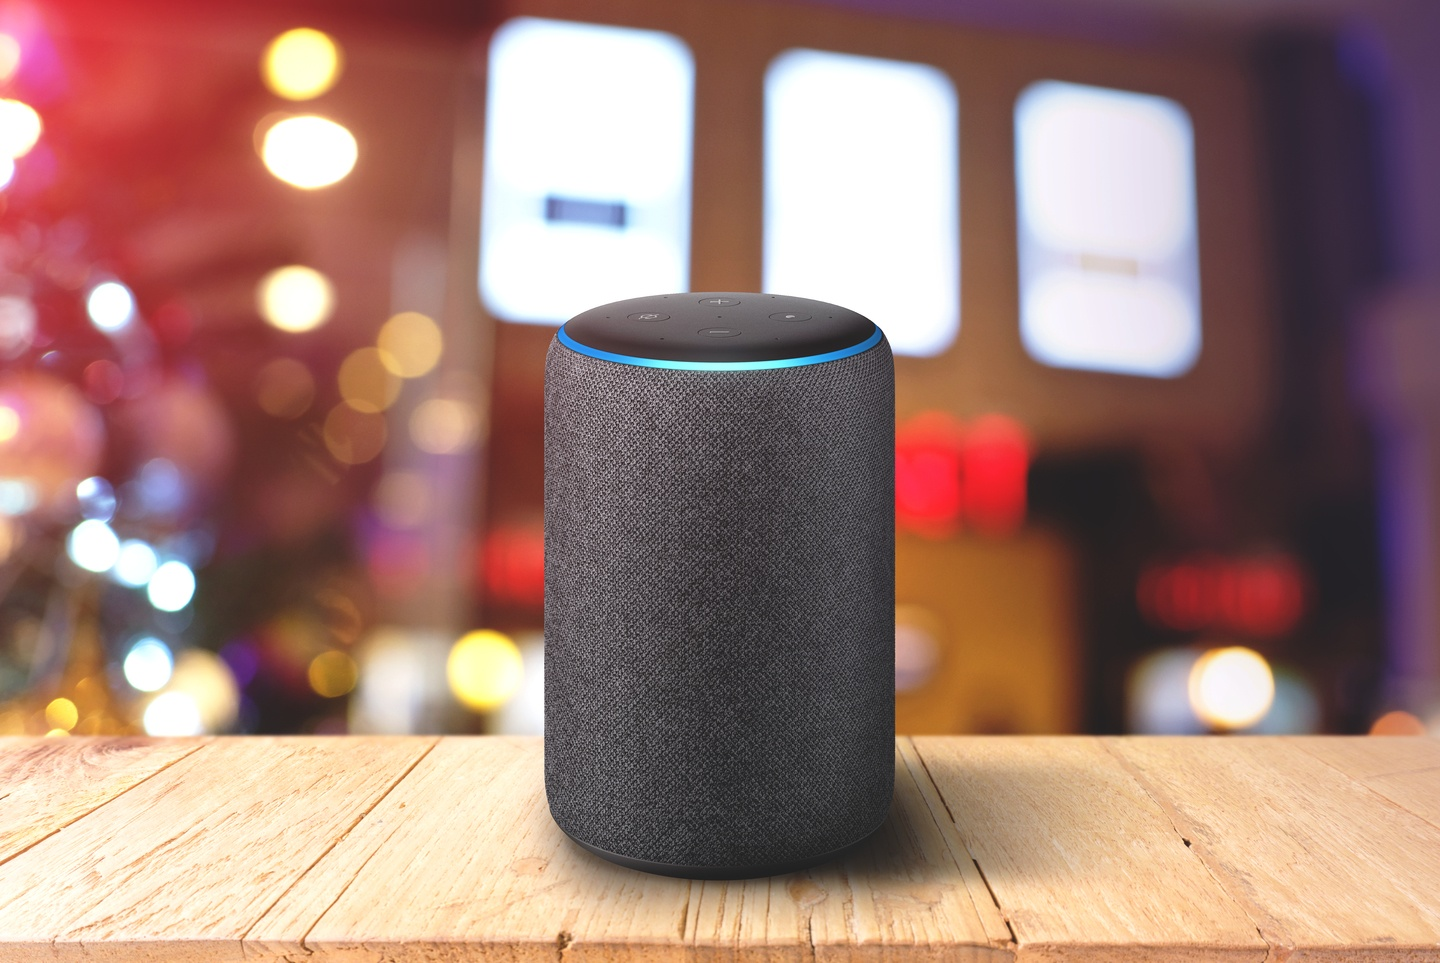 A smart hub on the table at a holiday party